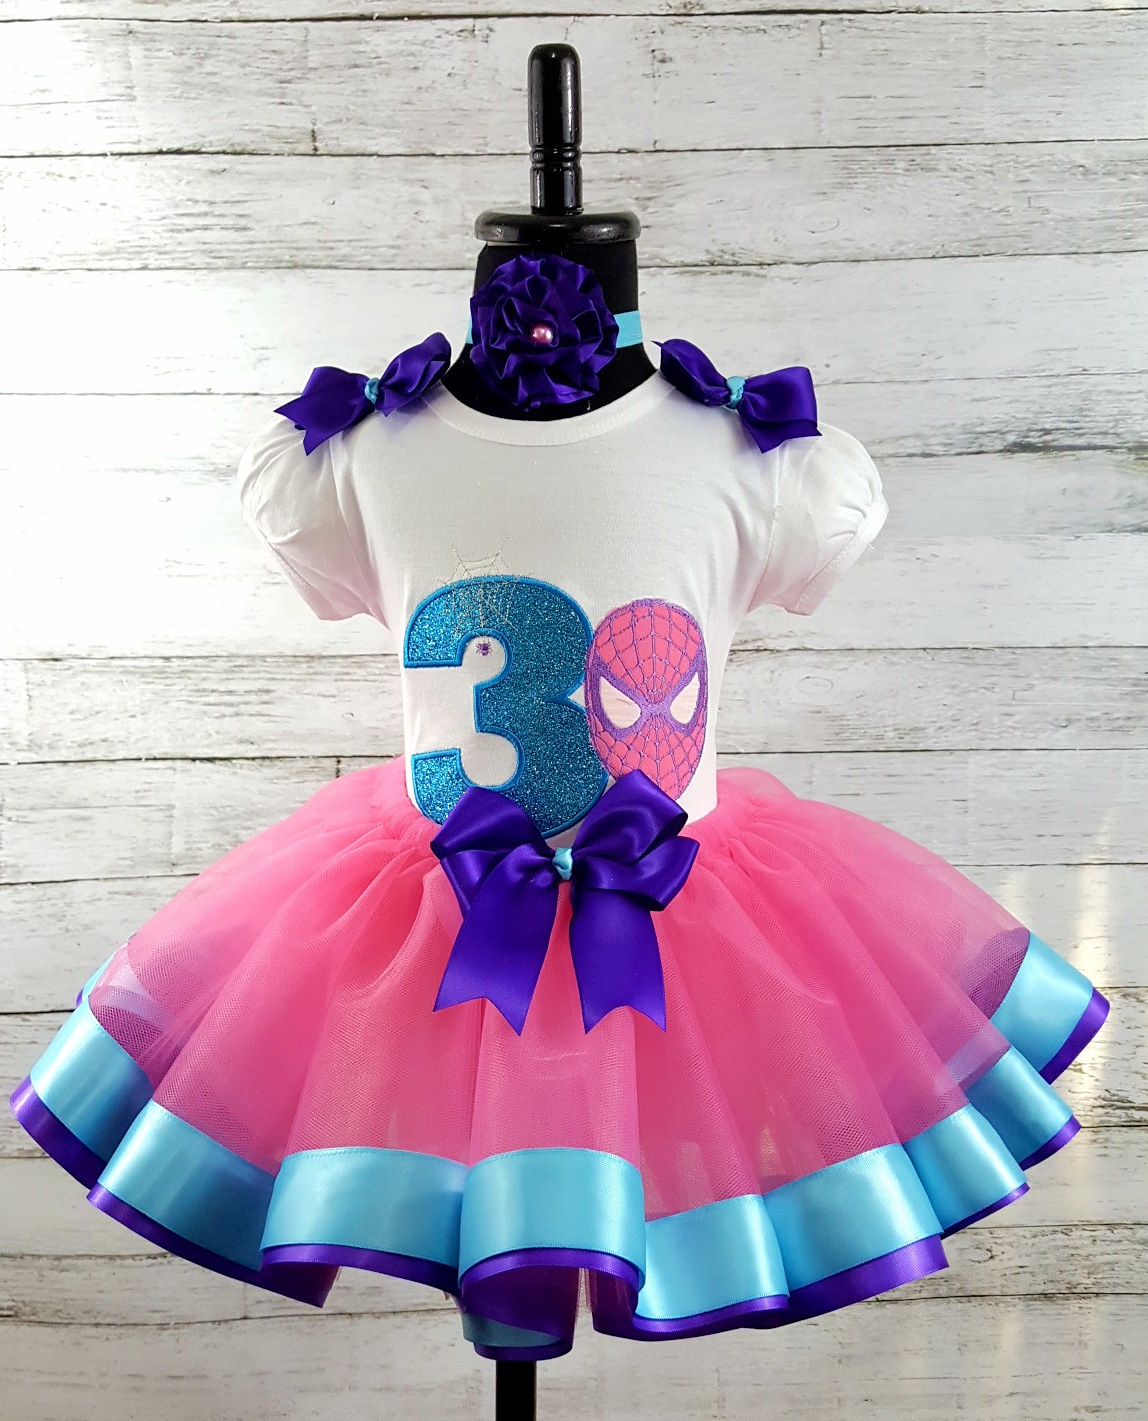 75bdcedc5 Birthday Girl SPIDER MAN Pink Purple Turquoise 3 Piece Personalized Ribbon  Tutu Set-The Couure Baby & Child Botuique